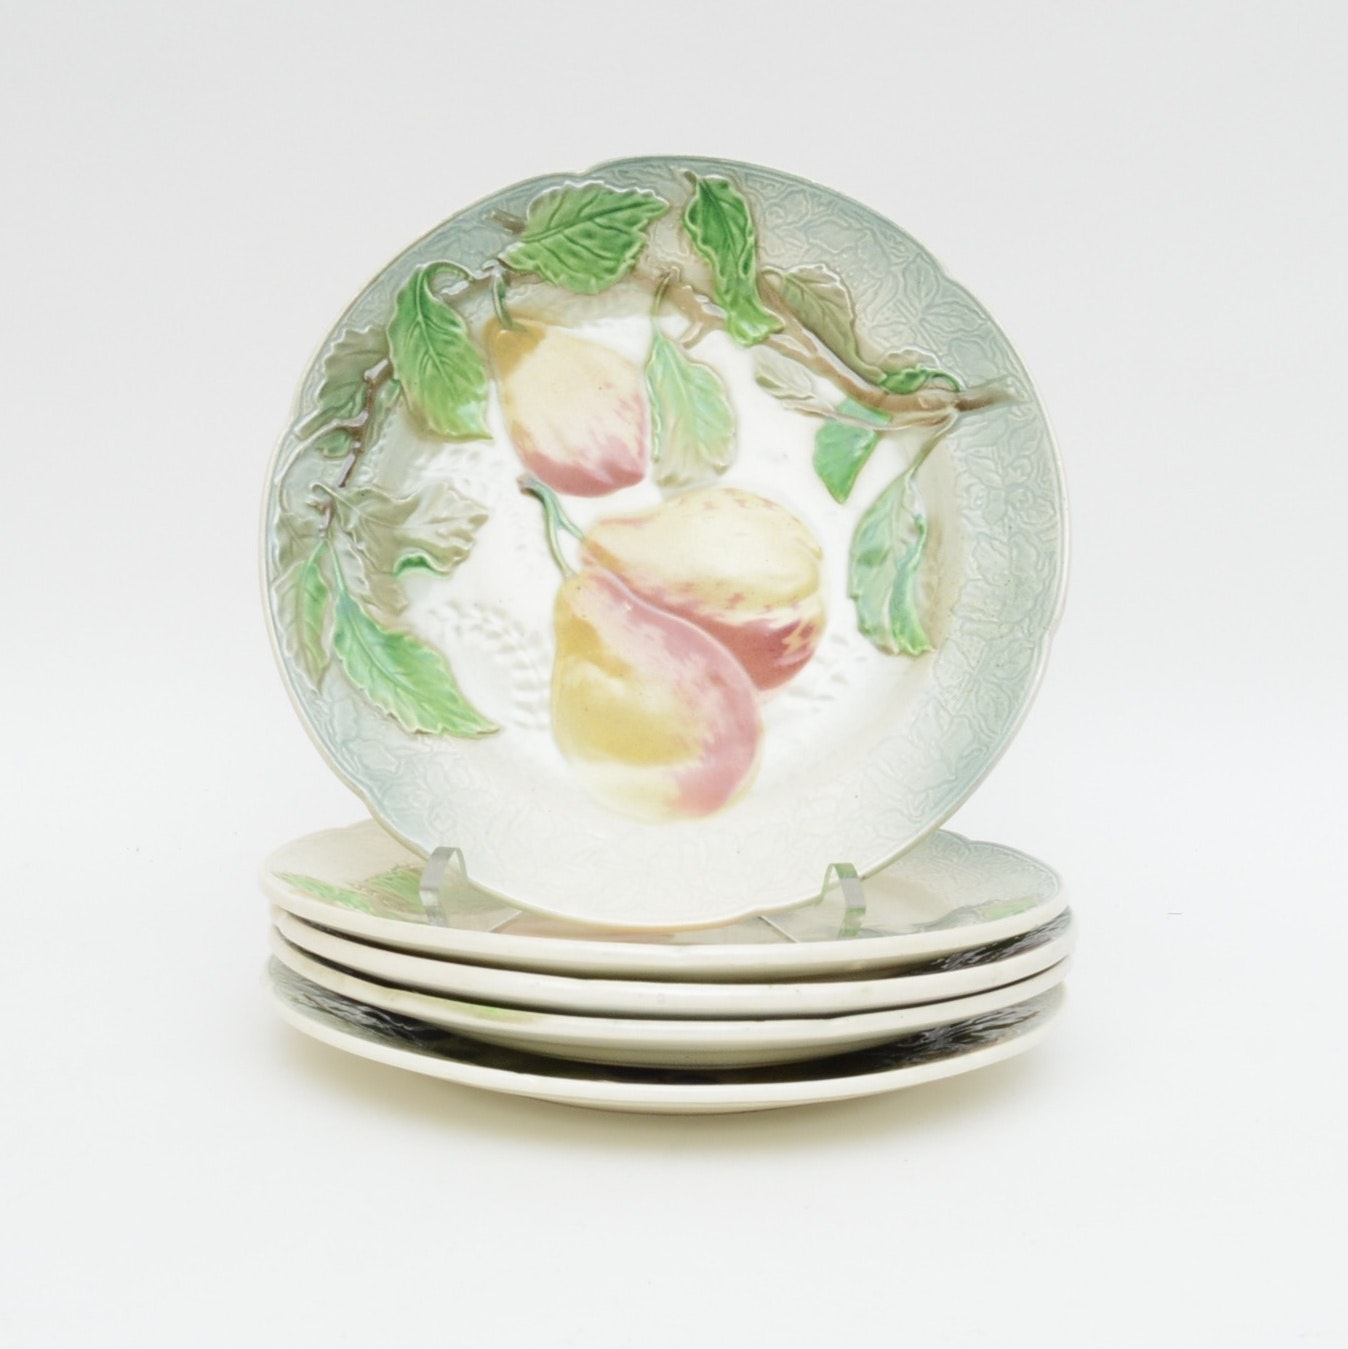 Hand-Painted K&C Clement of France Earthenware Salad Plates